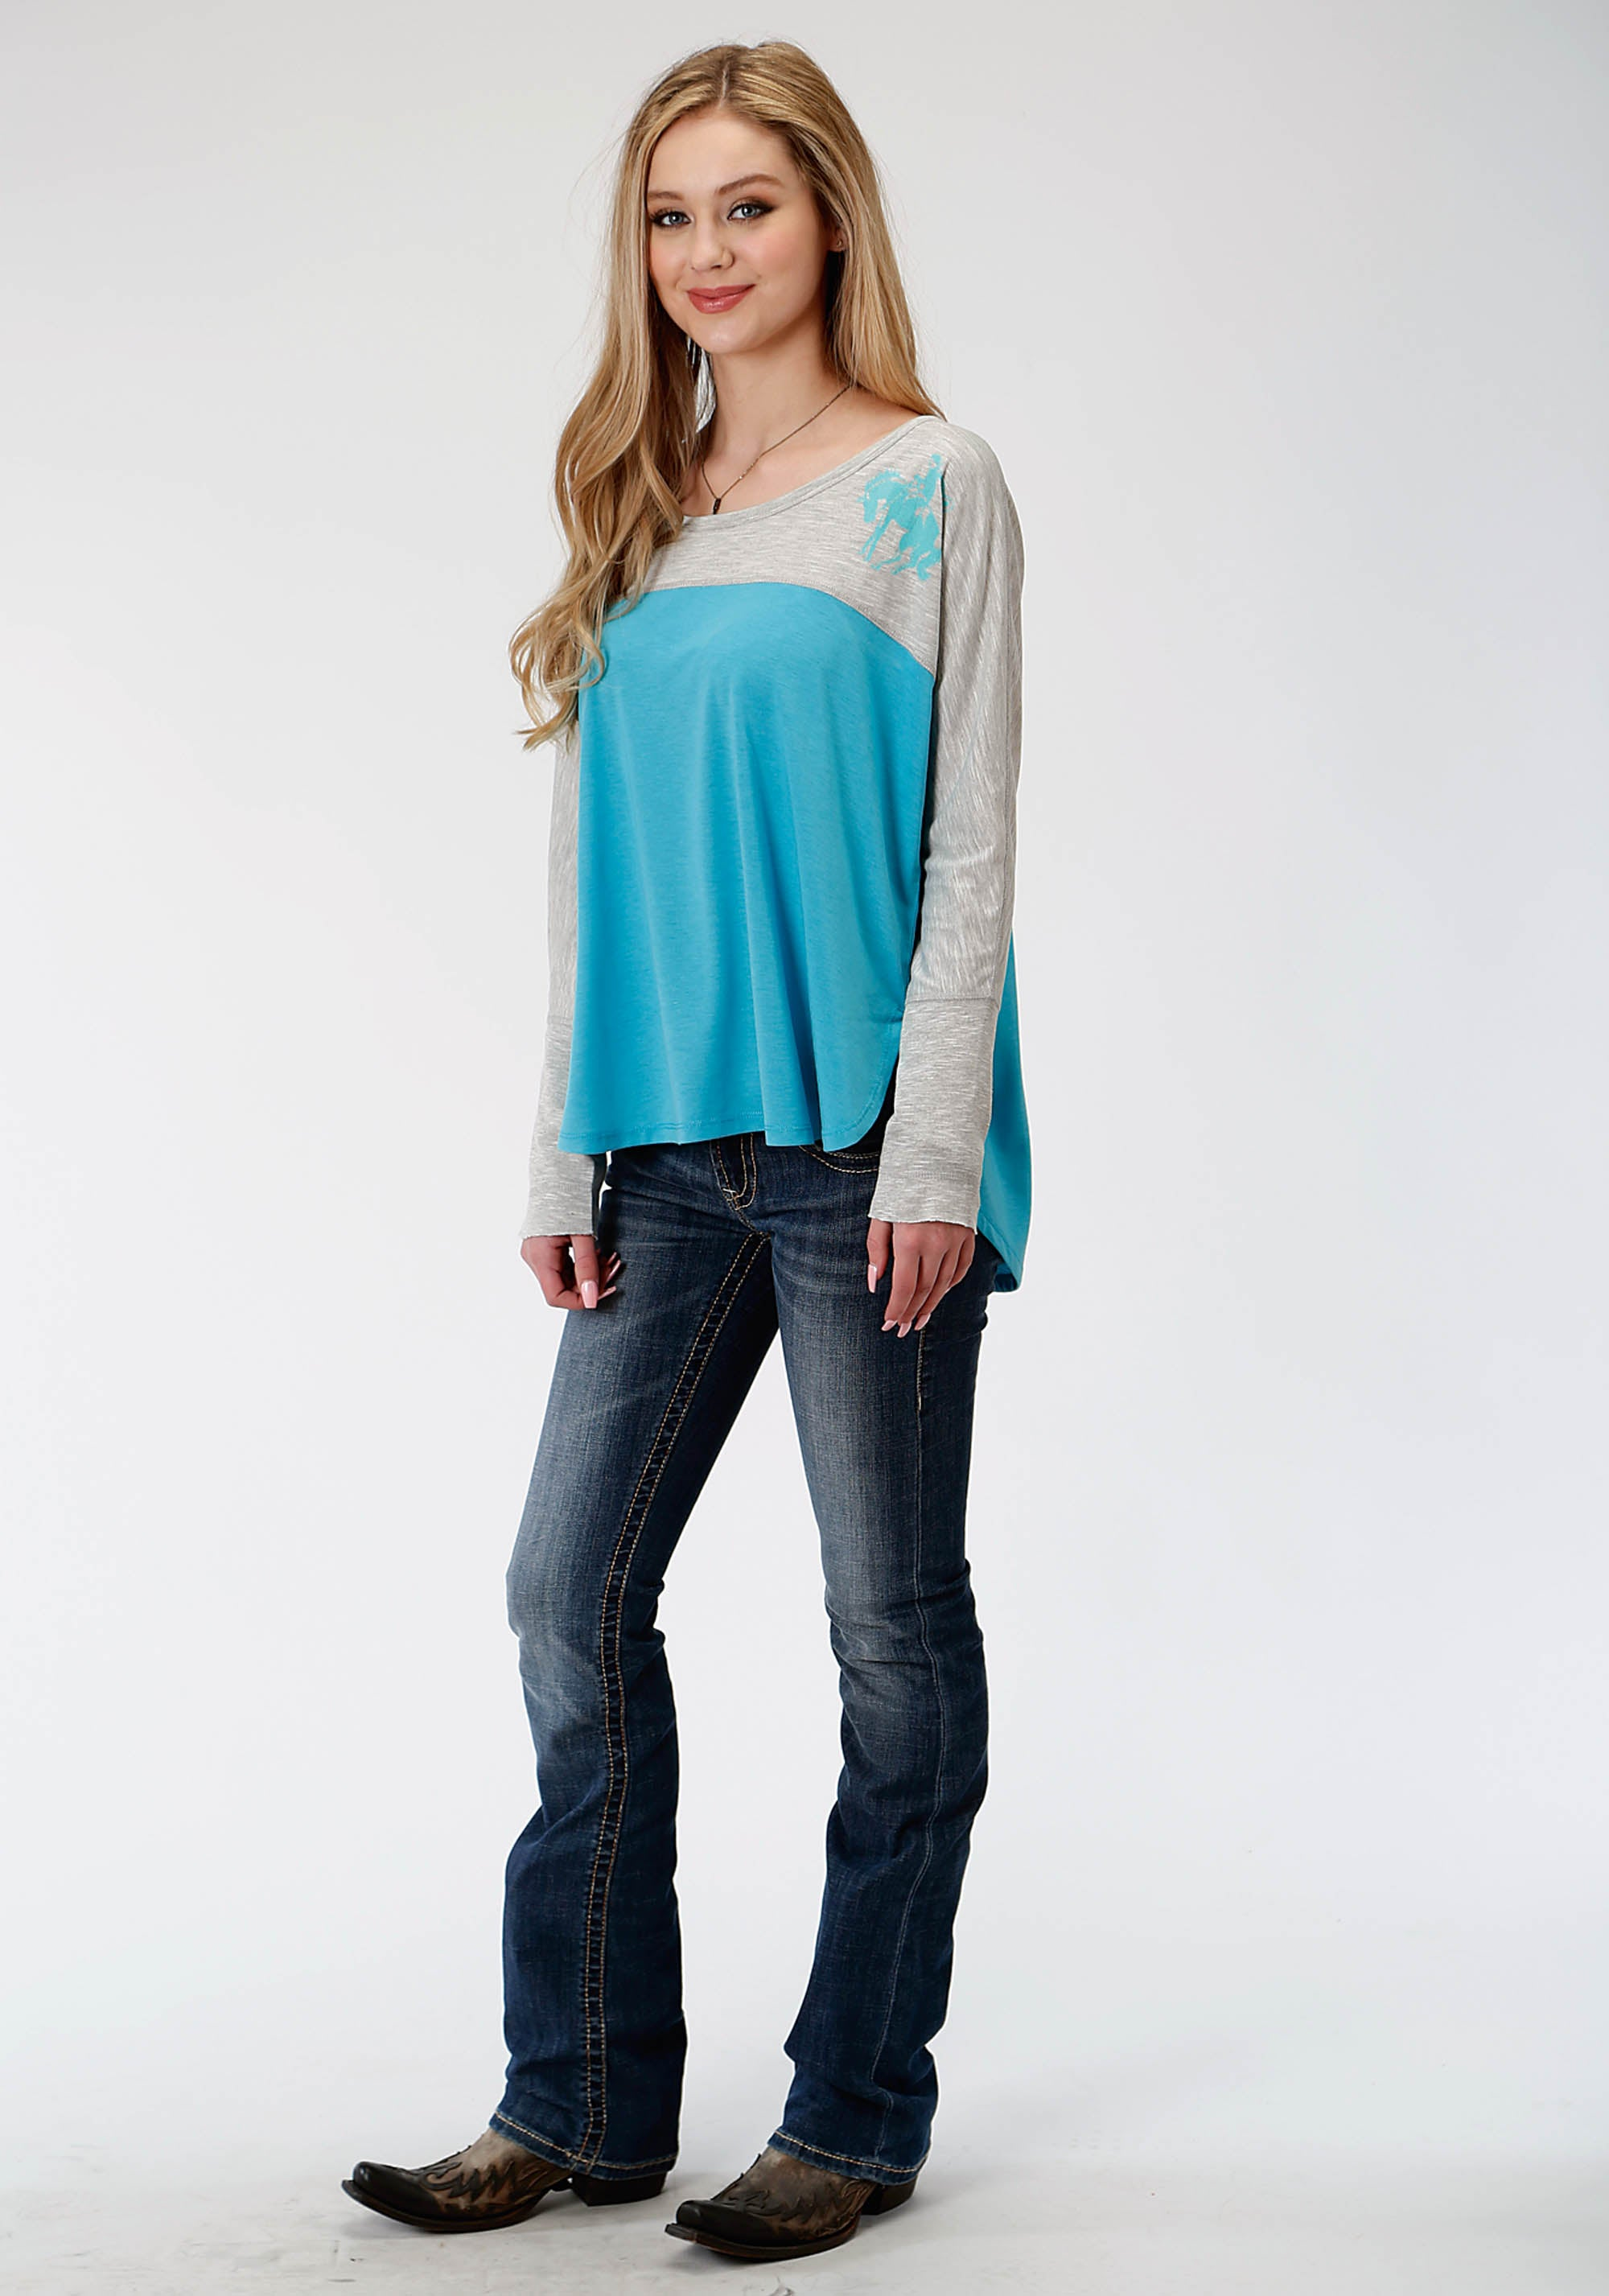 ROPER WOMENS GREY 0489 P/R JERSEY LS SCOOP NECK TEE FIVE STAR COLLECTION- FALL II LONG SLEEVE